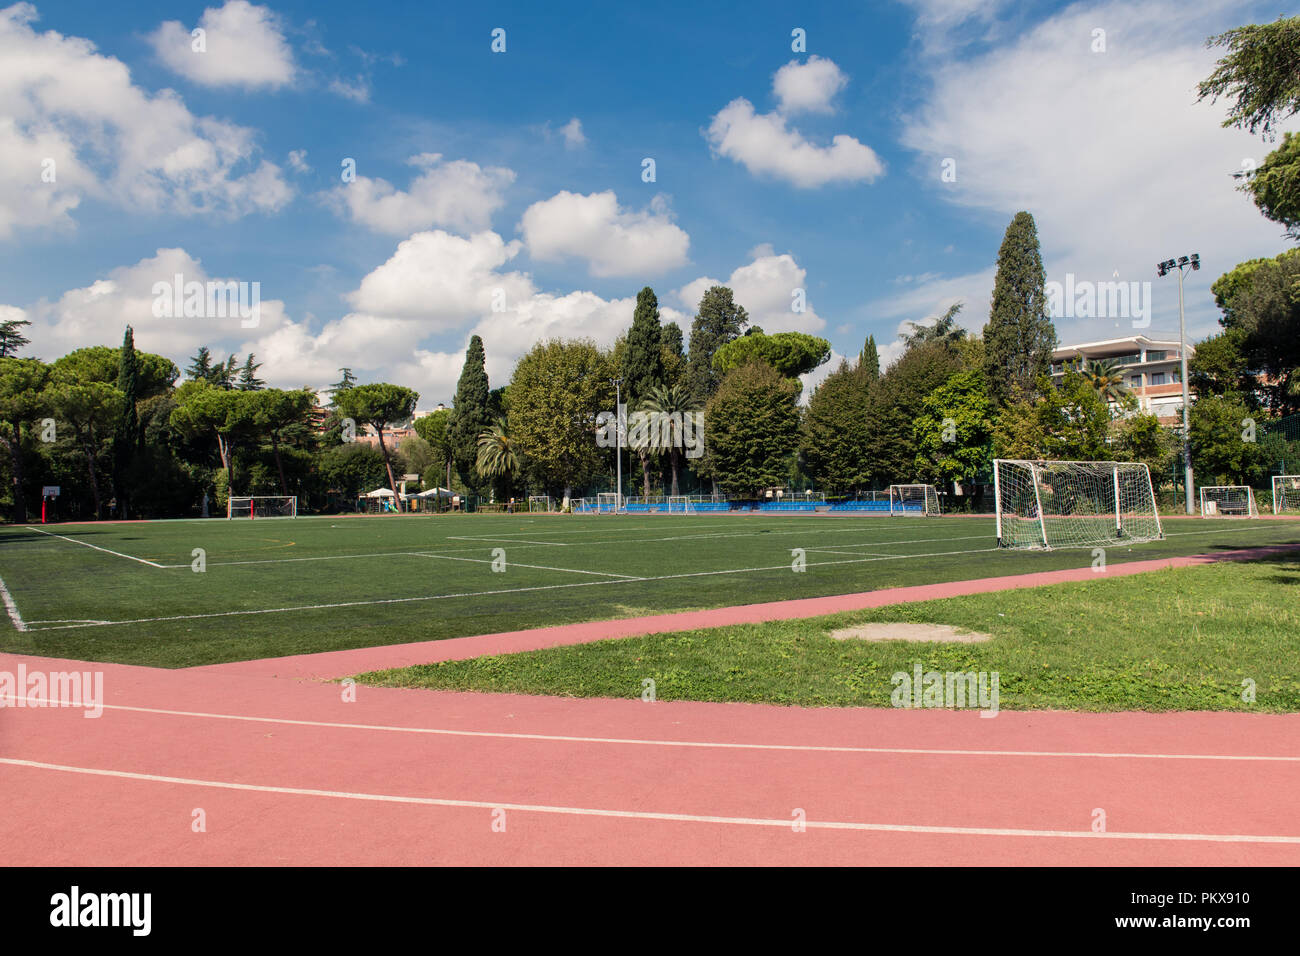 Wide shot of green football field in park with athletic track and trees around, no people landscape view - Stock Image